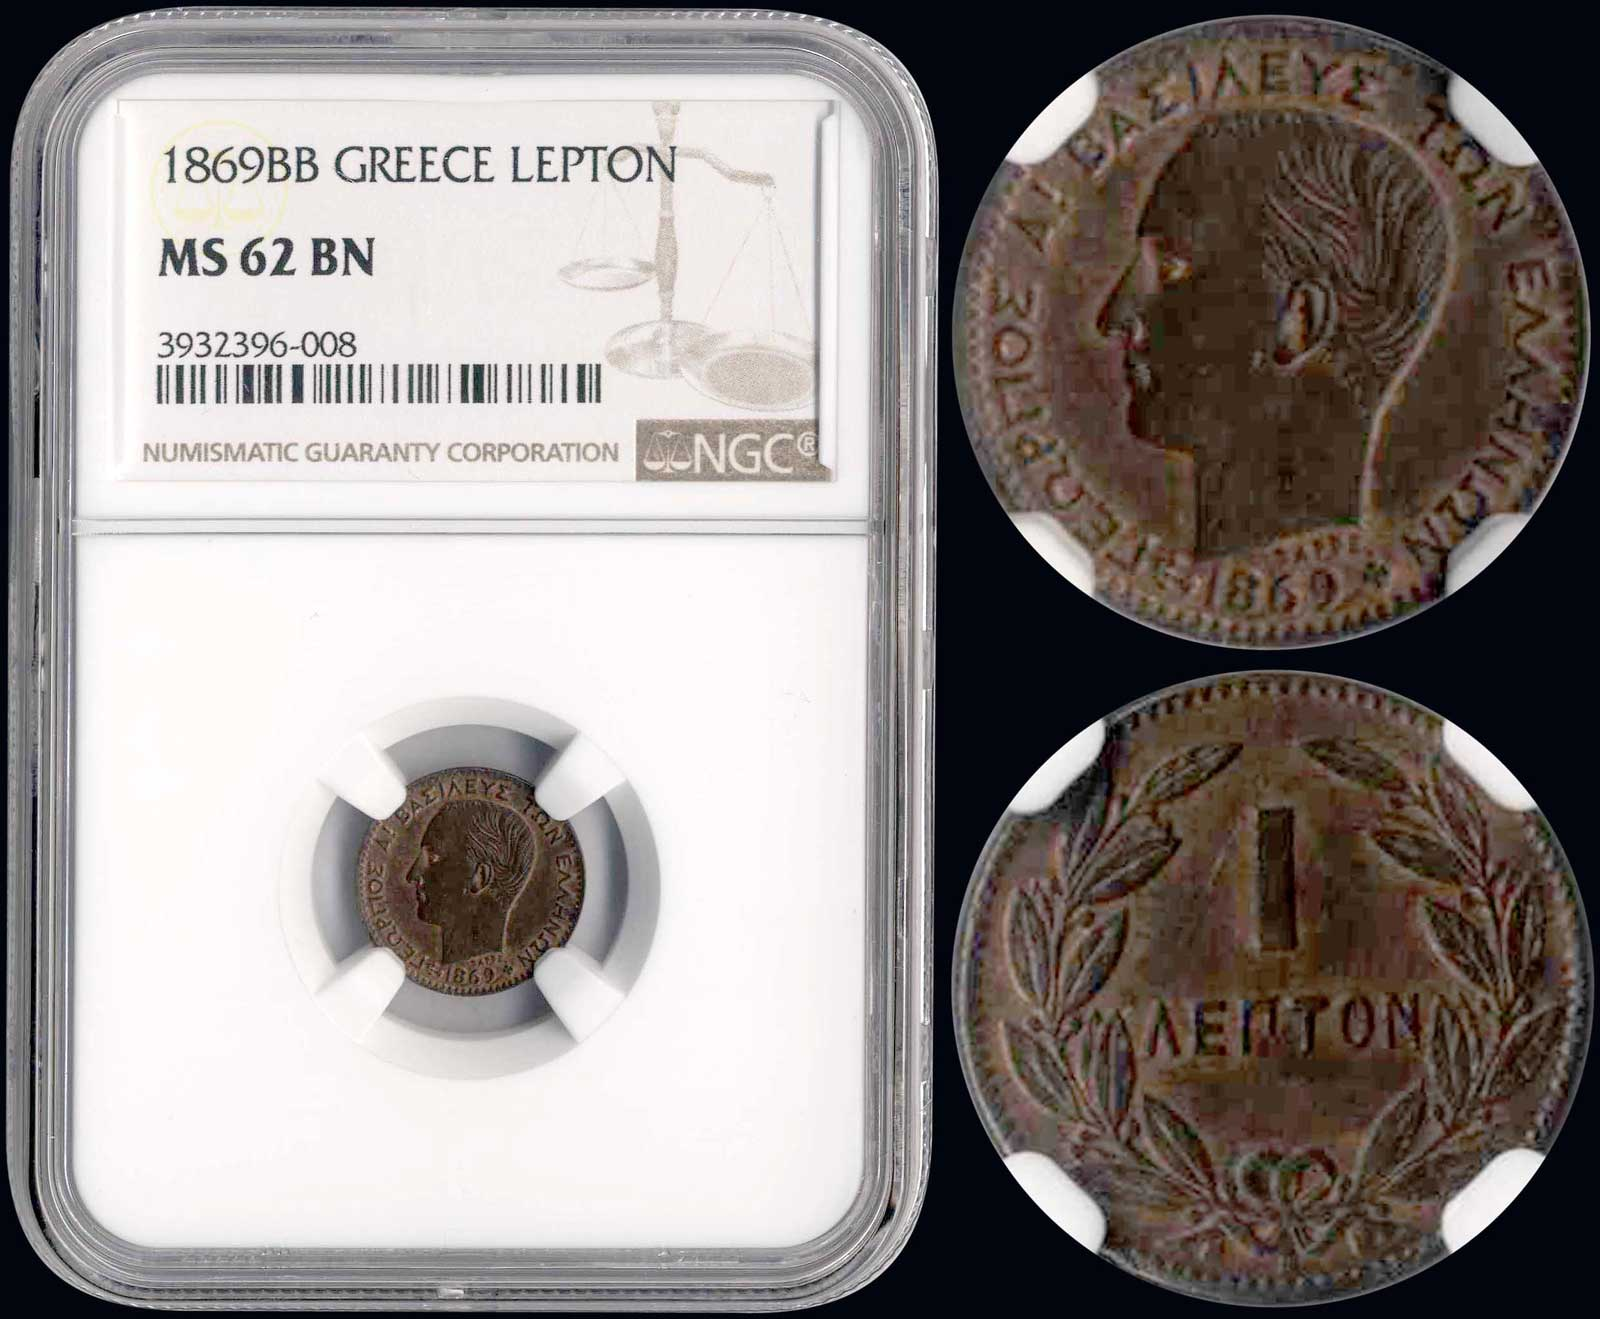 Lot 9075 - GREECE-  COINS & TOKENS king george i -  A. Karamitsos Public & LIVE Bid Auction 610 Coins, Medals & Banknotes